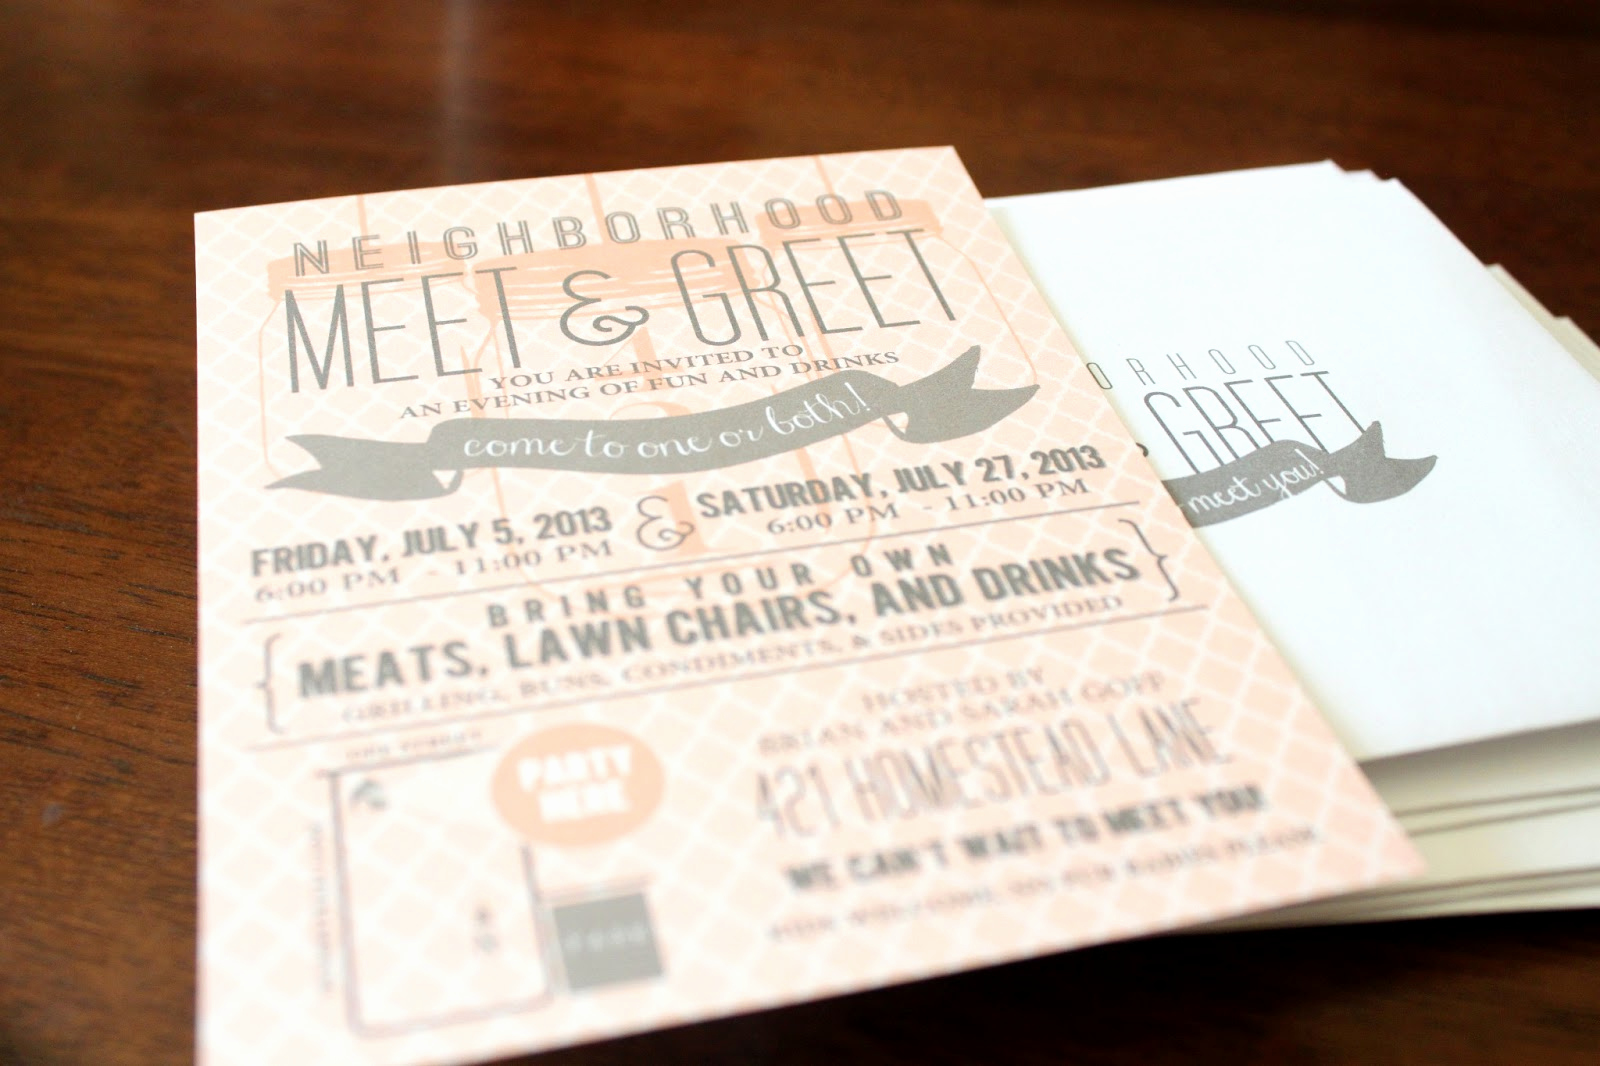 Meet and Greet Invitation Lovely Signatures by Sarah Meet N Greet Party Invitation and